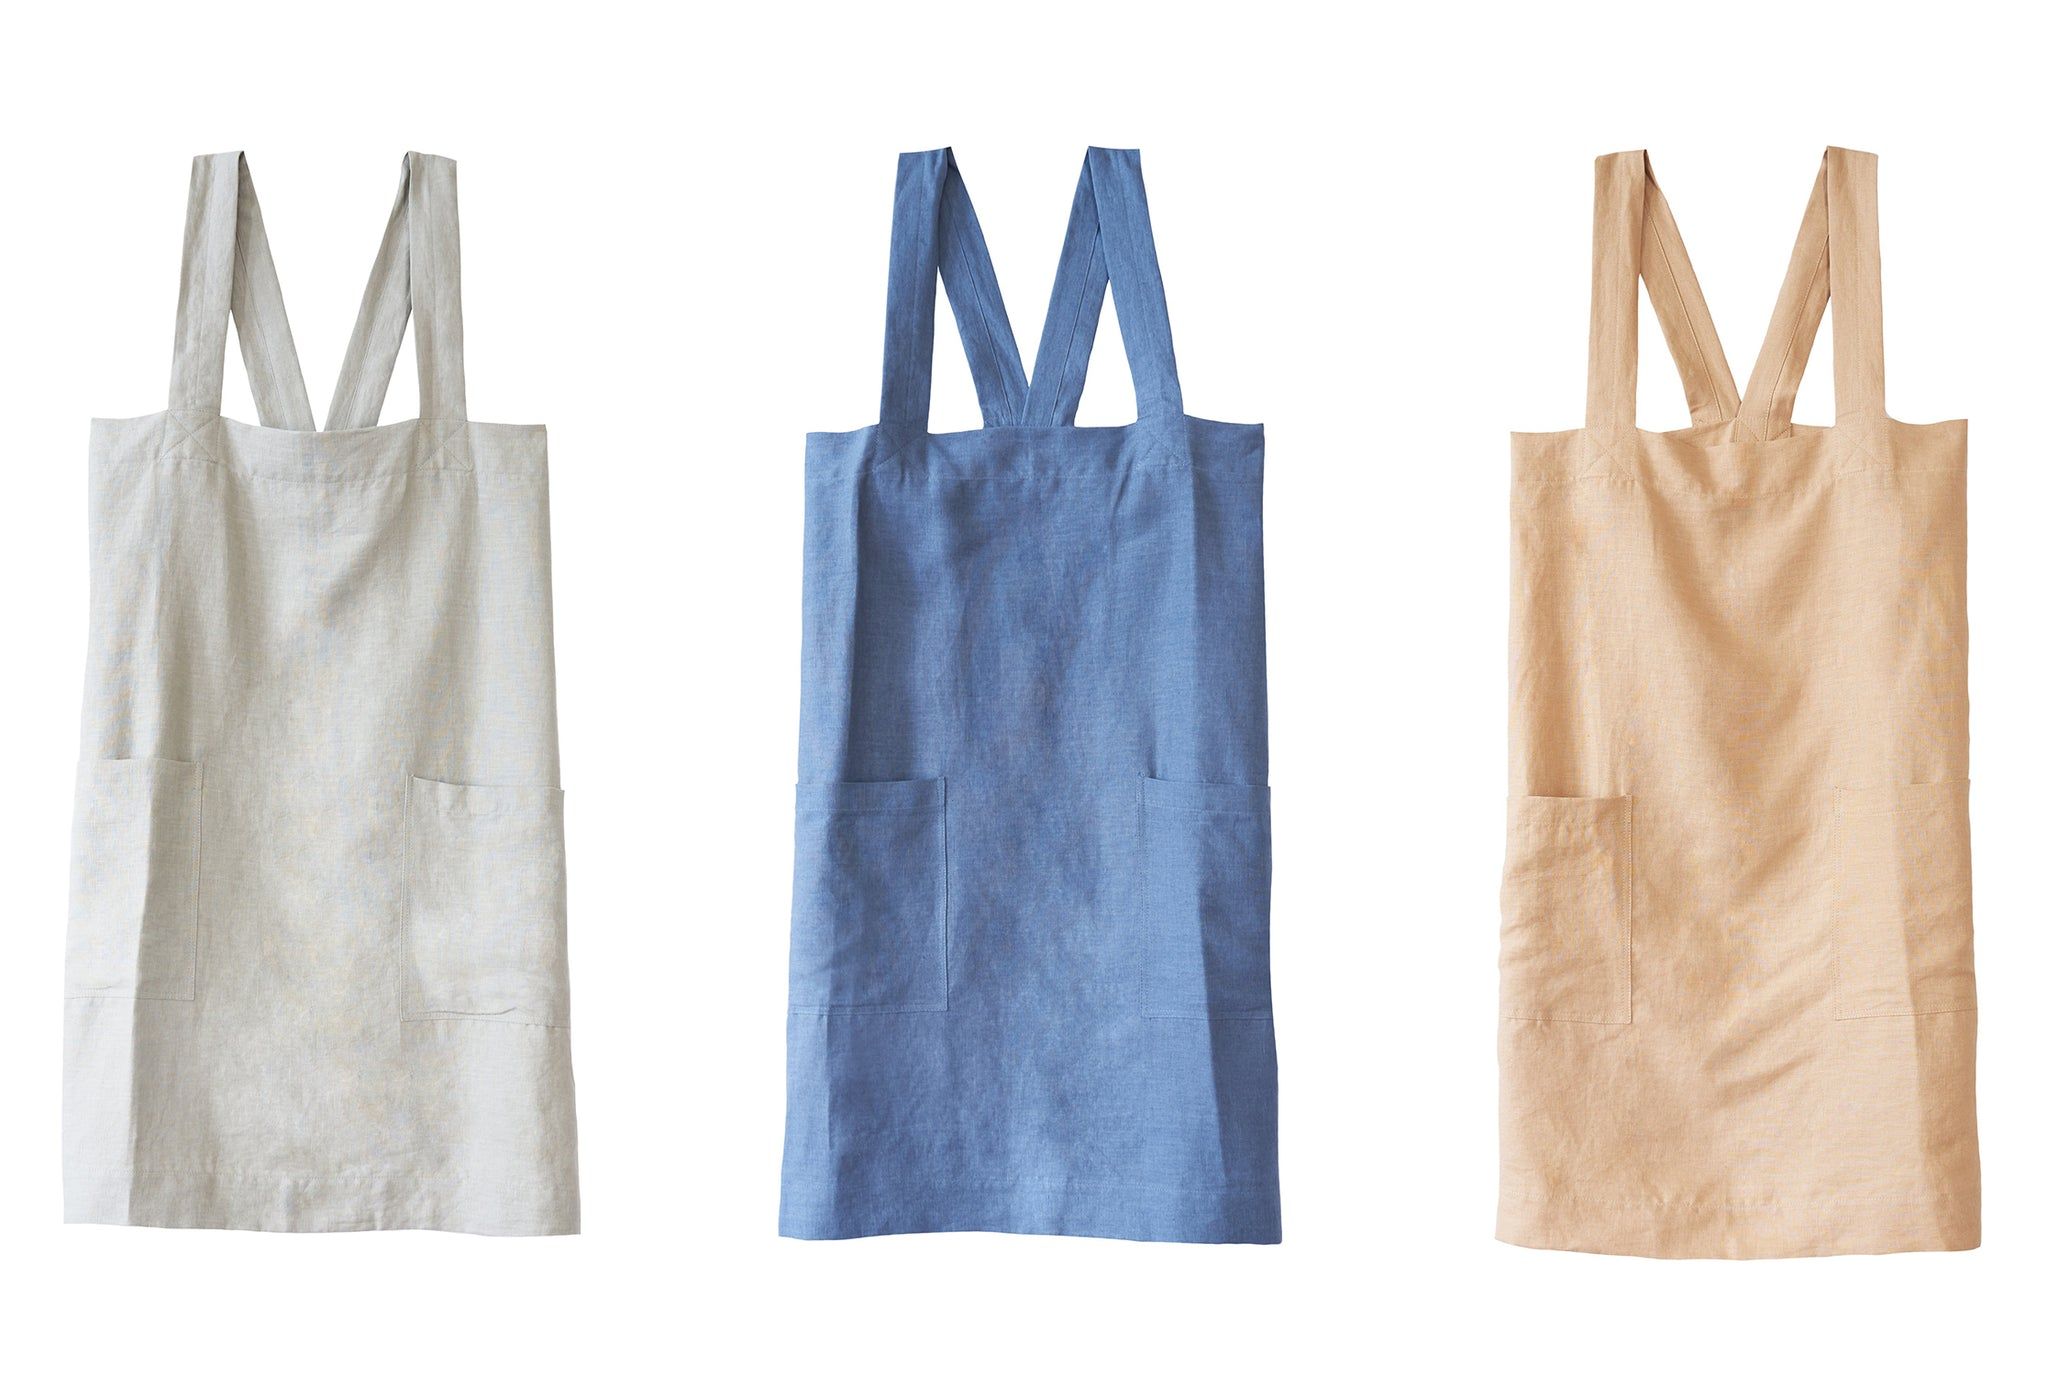 three aprons in sand color, indigo color, camel color